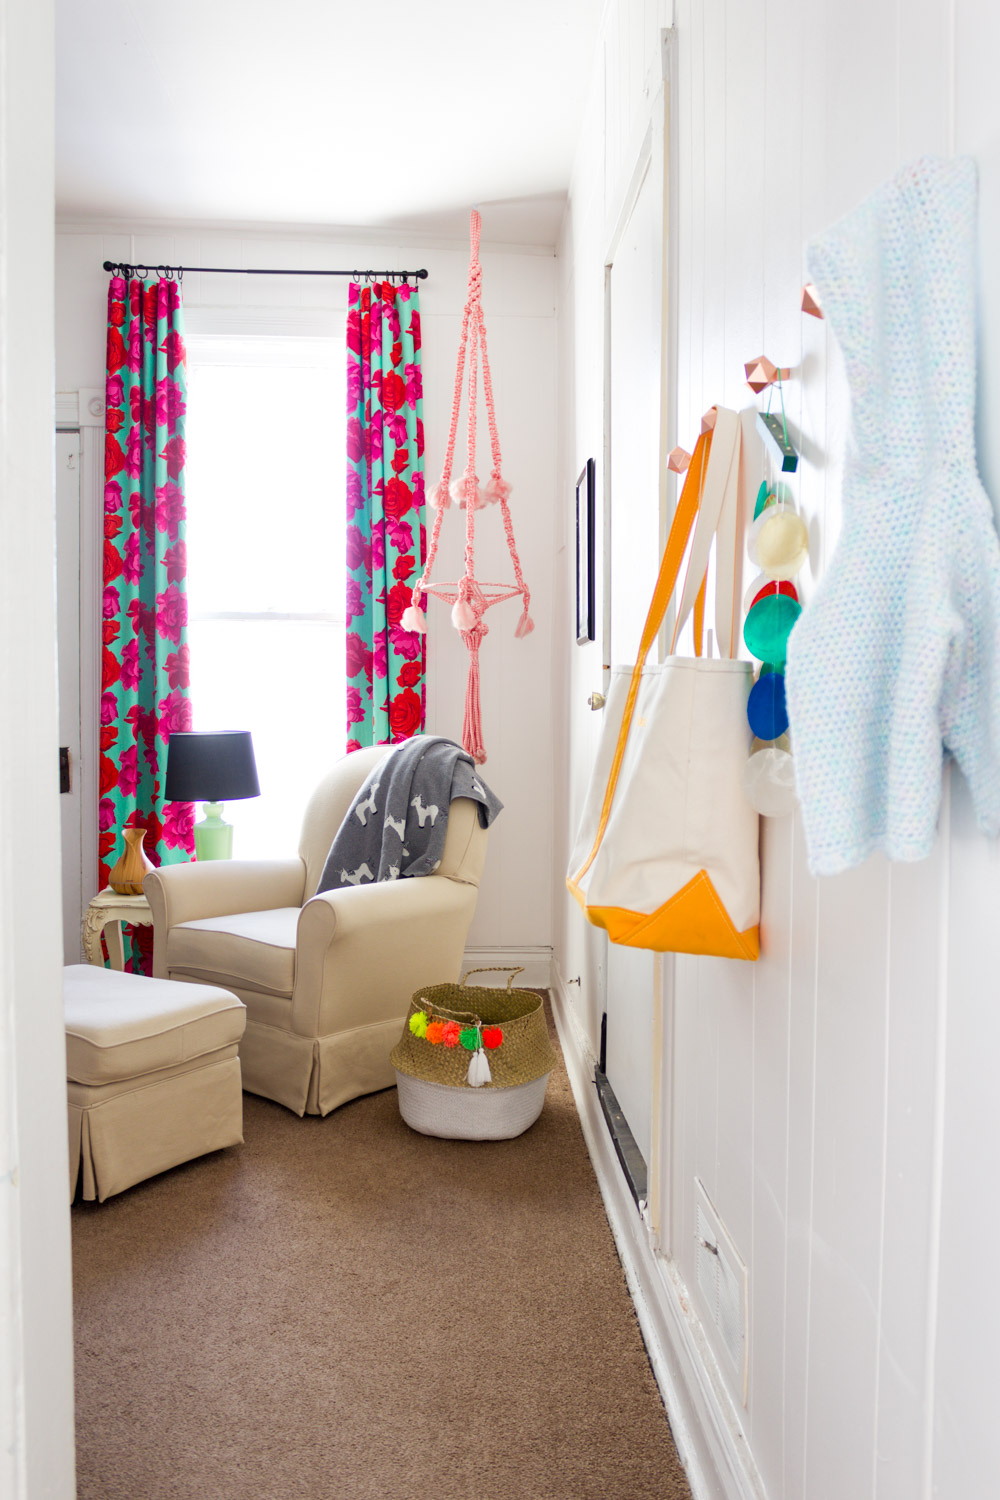 Copy of Colorful, pattern-filled nursery, DIY rose-print curtains